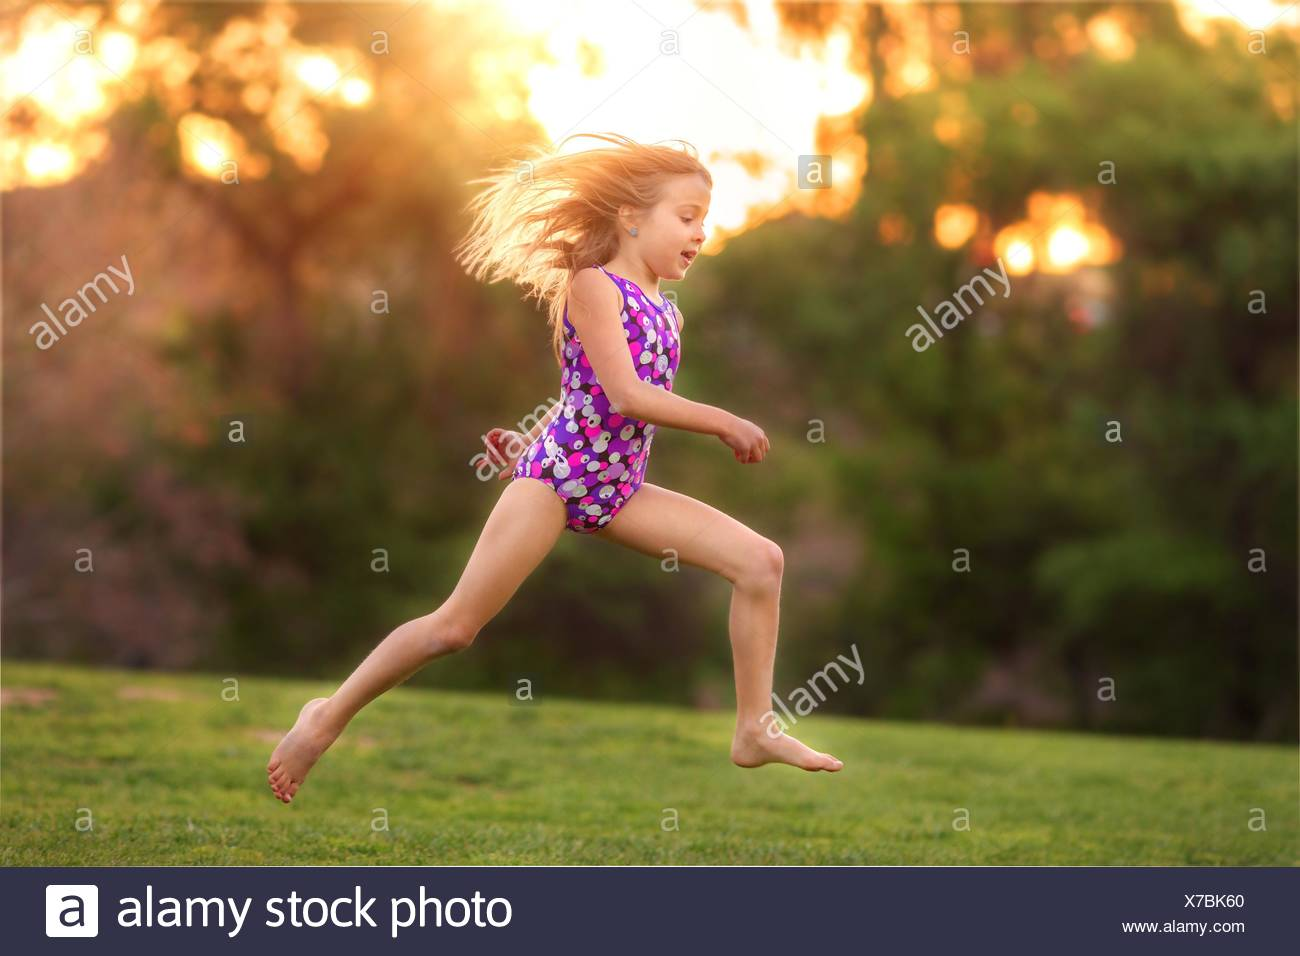 USA, Little girl (8-9) wearing swimsuit jumping in back yard - Stock Image